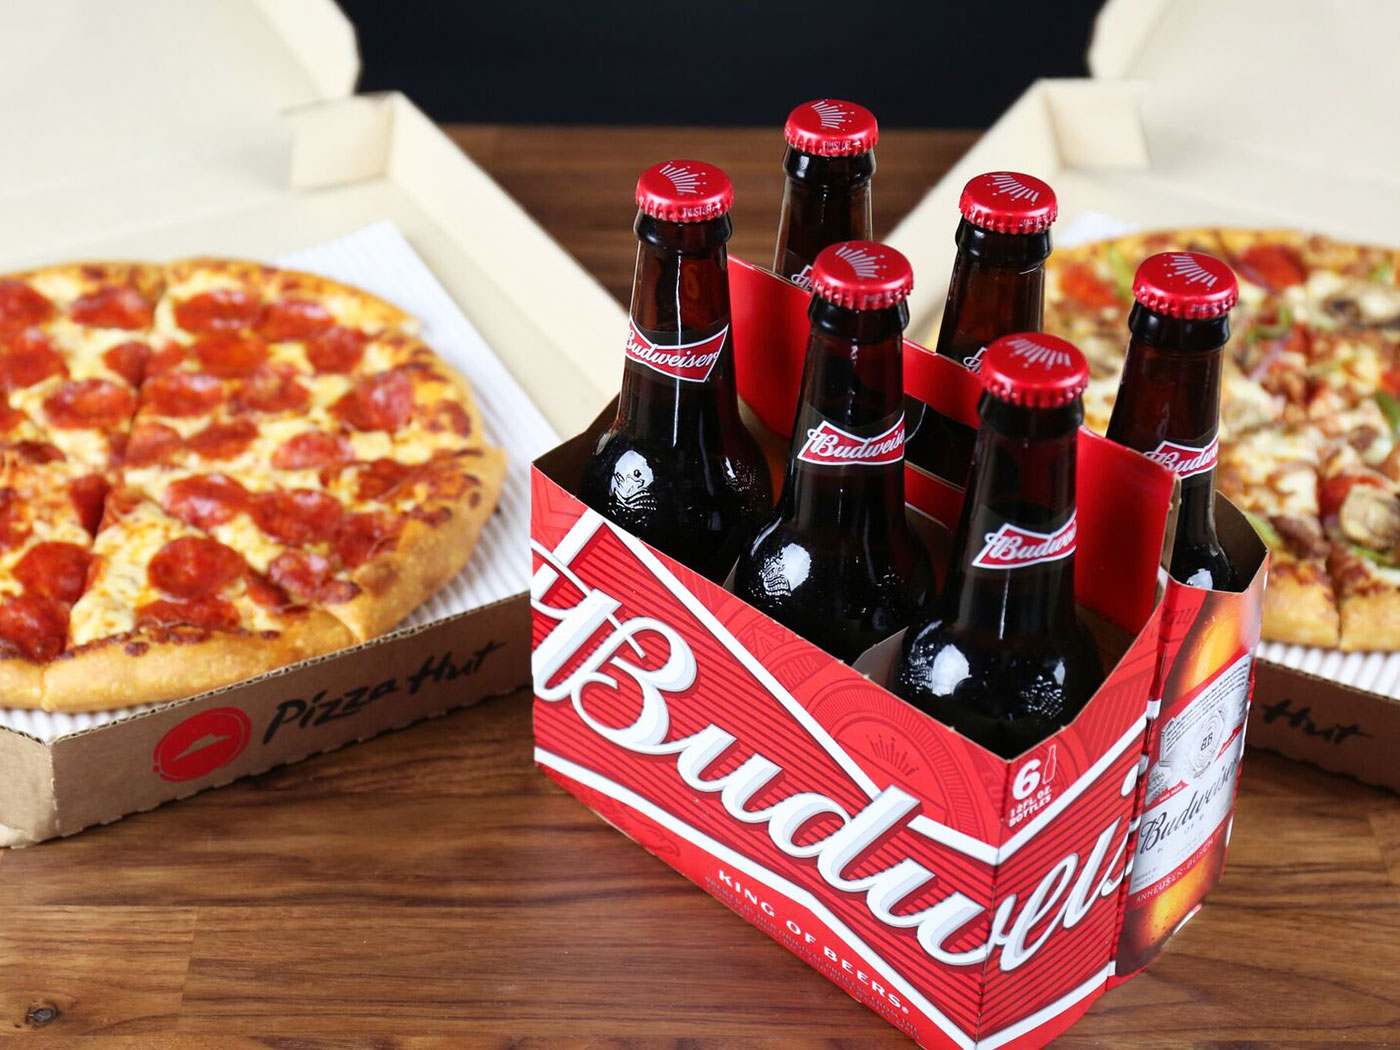 Pizza Hut tests beer and wine delivery